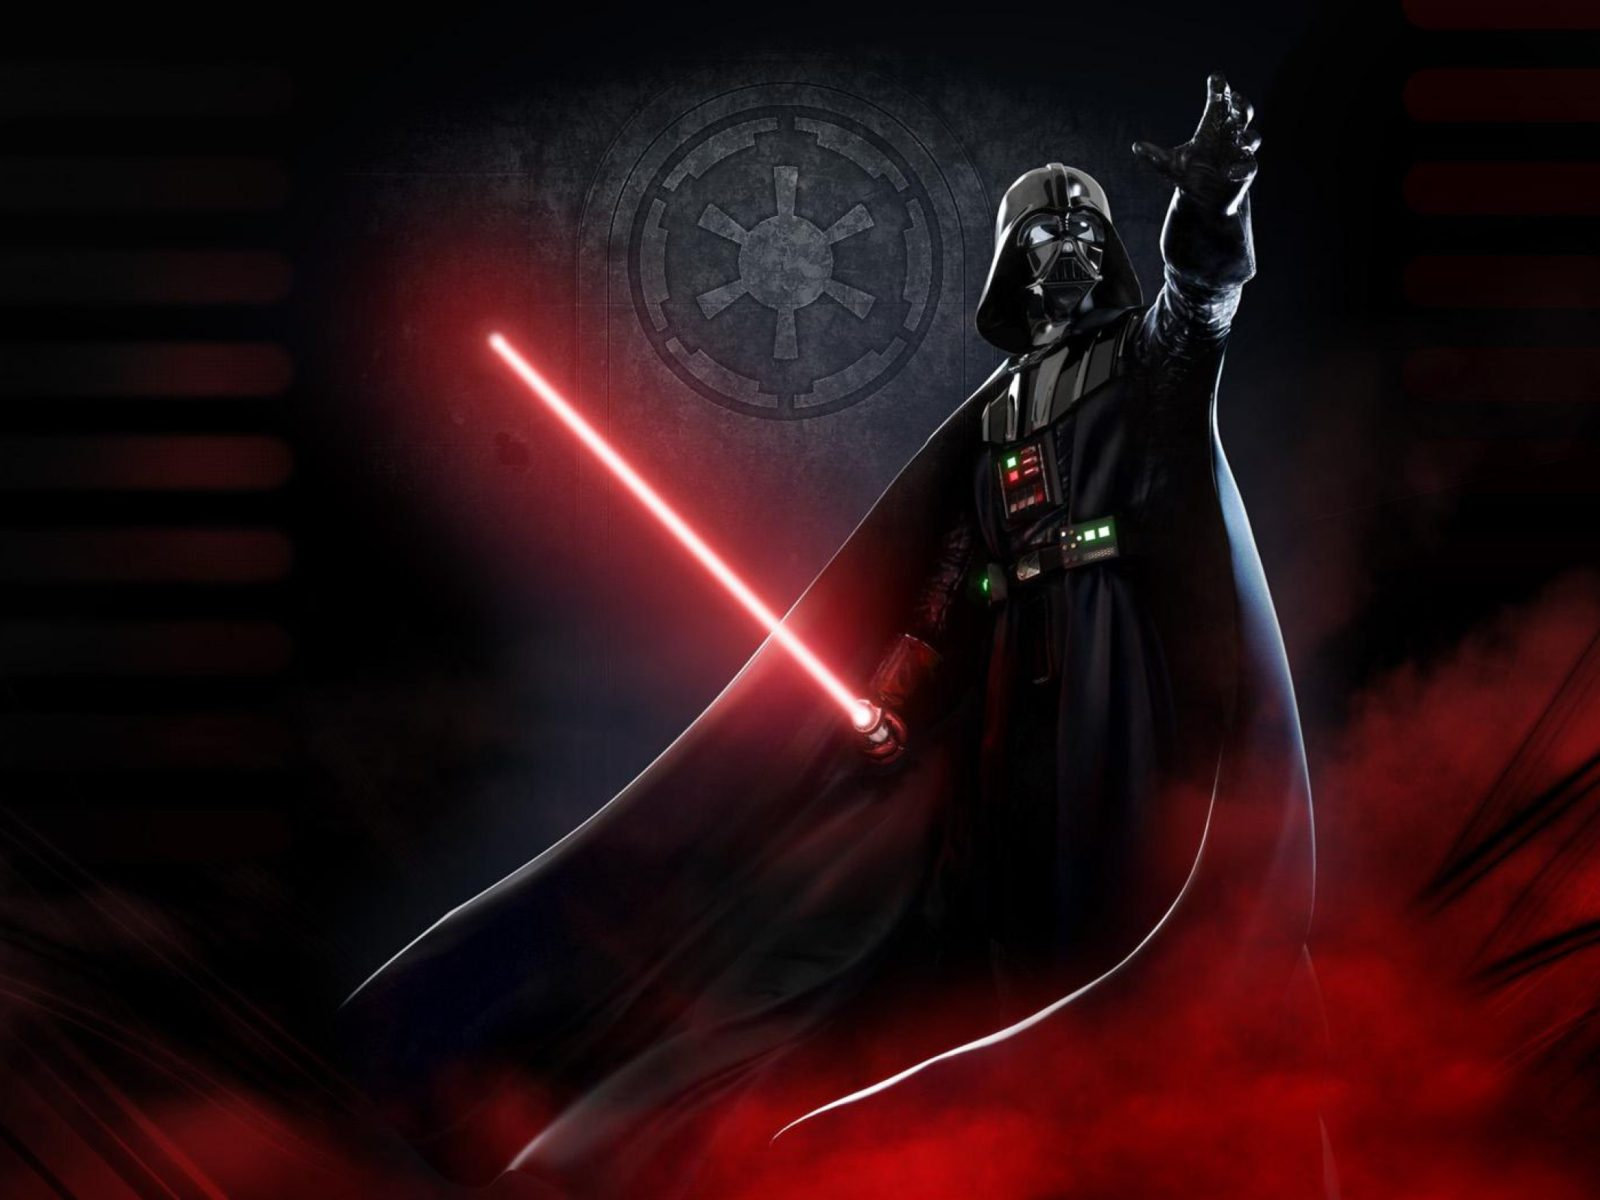 Darth Vader Real Name Anakin Skywalker Is A Fictional